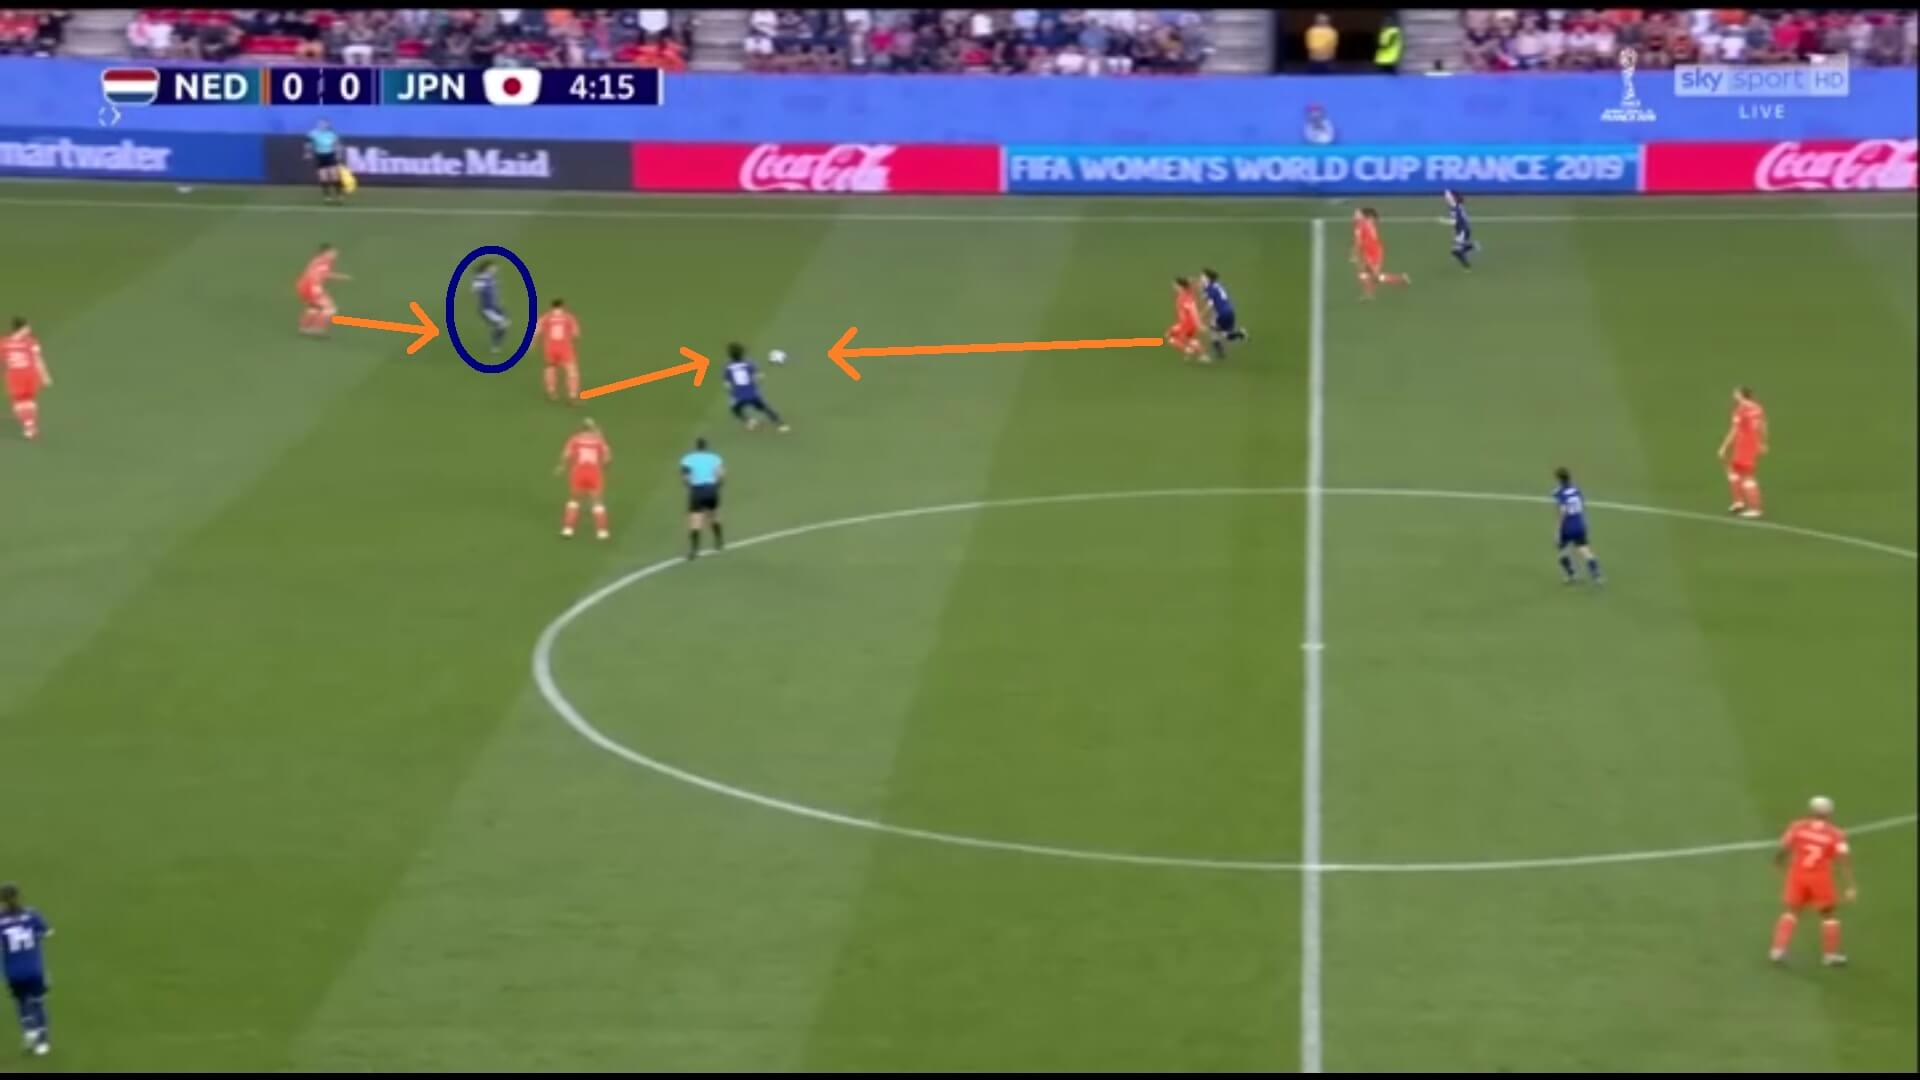 FIFA Women's World Cup 2019 Tactical Analysis: Netherlands vs Japan